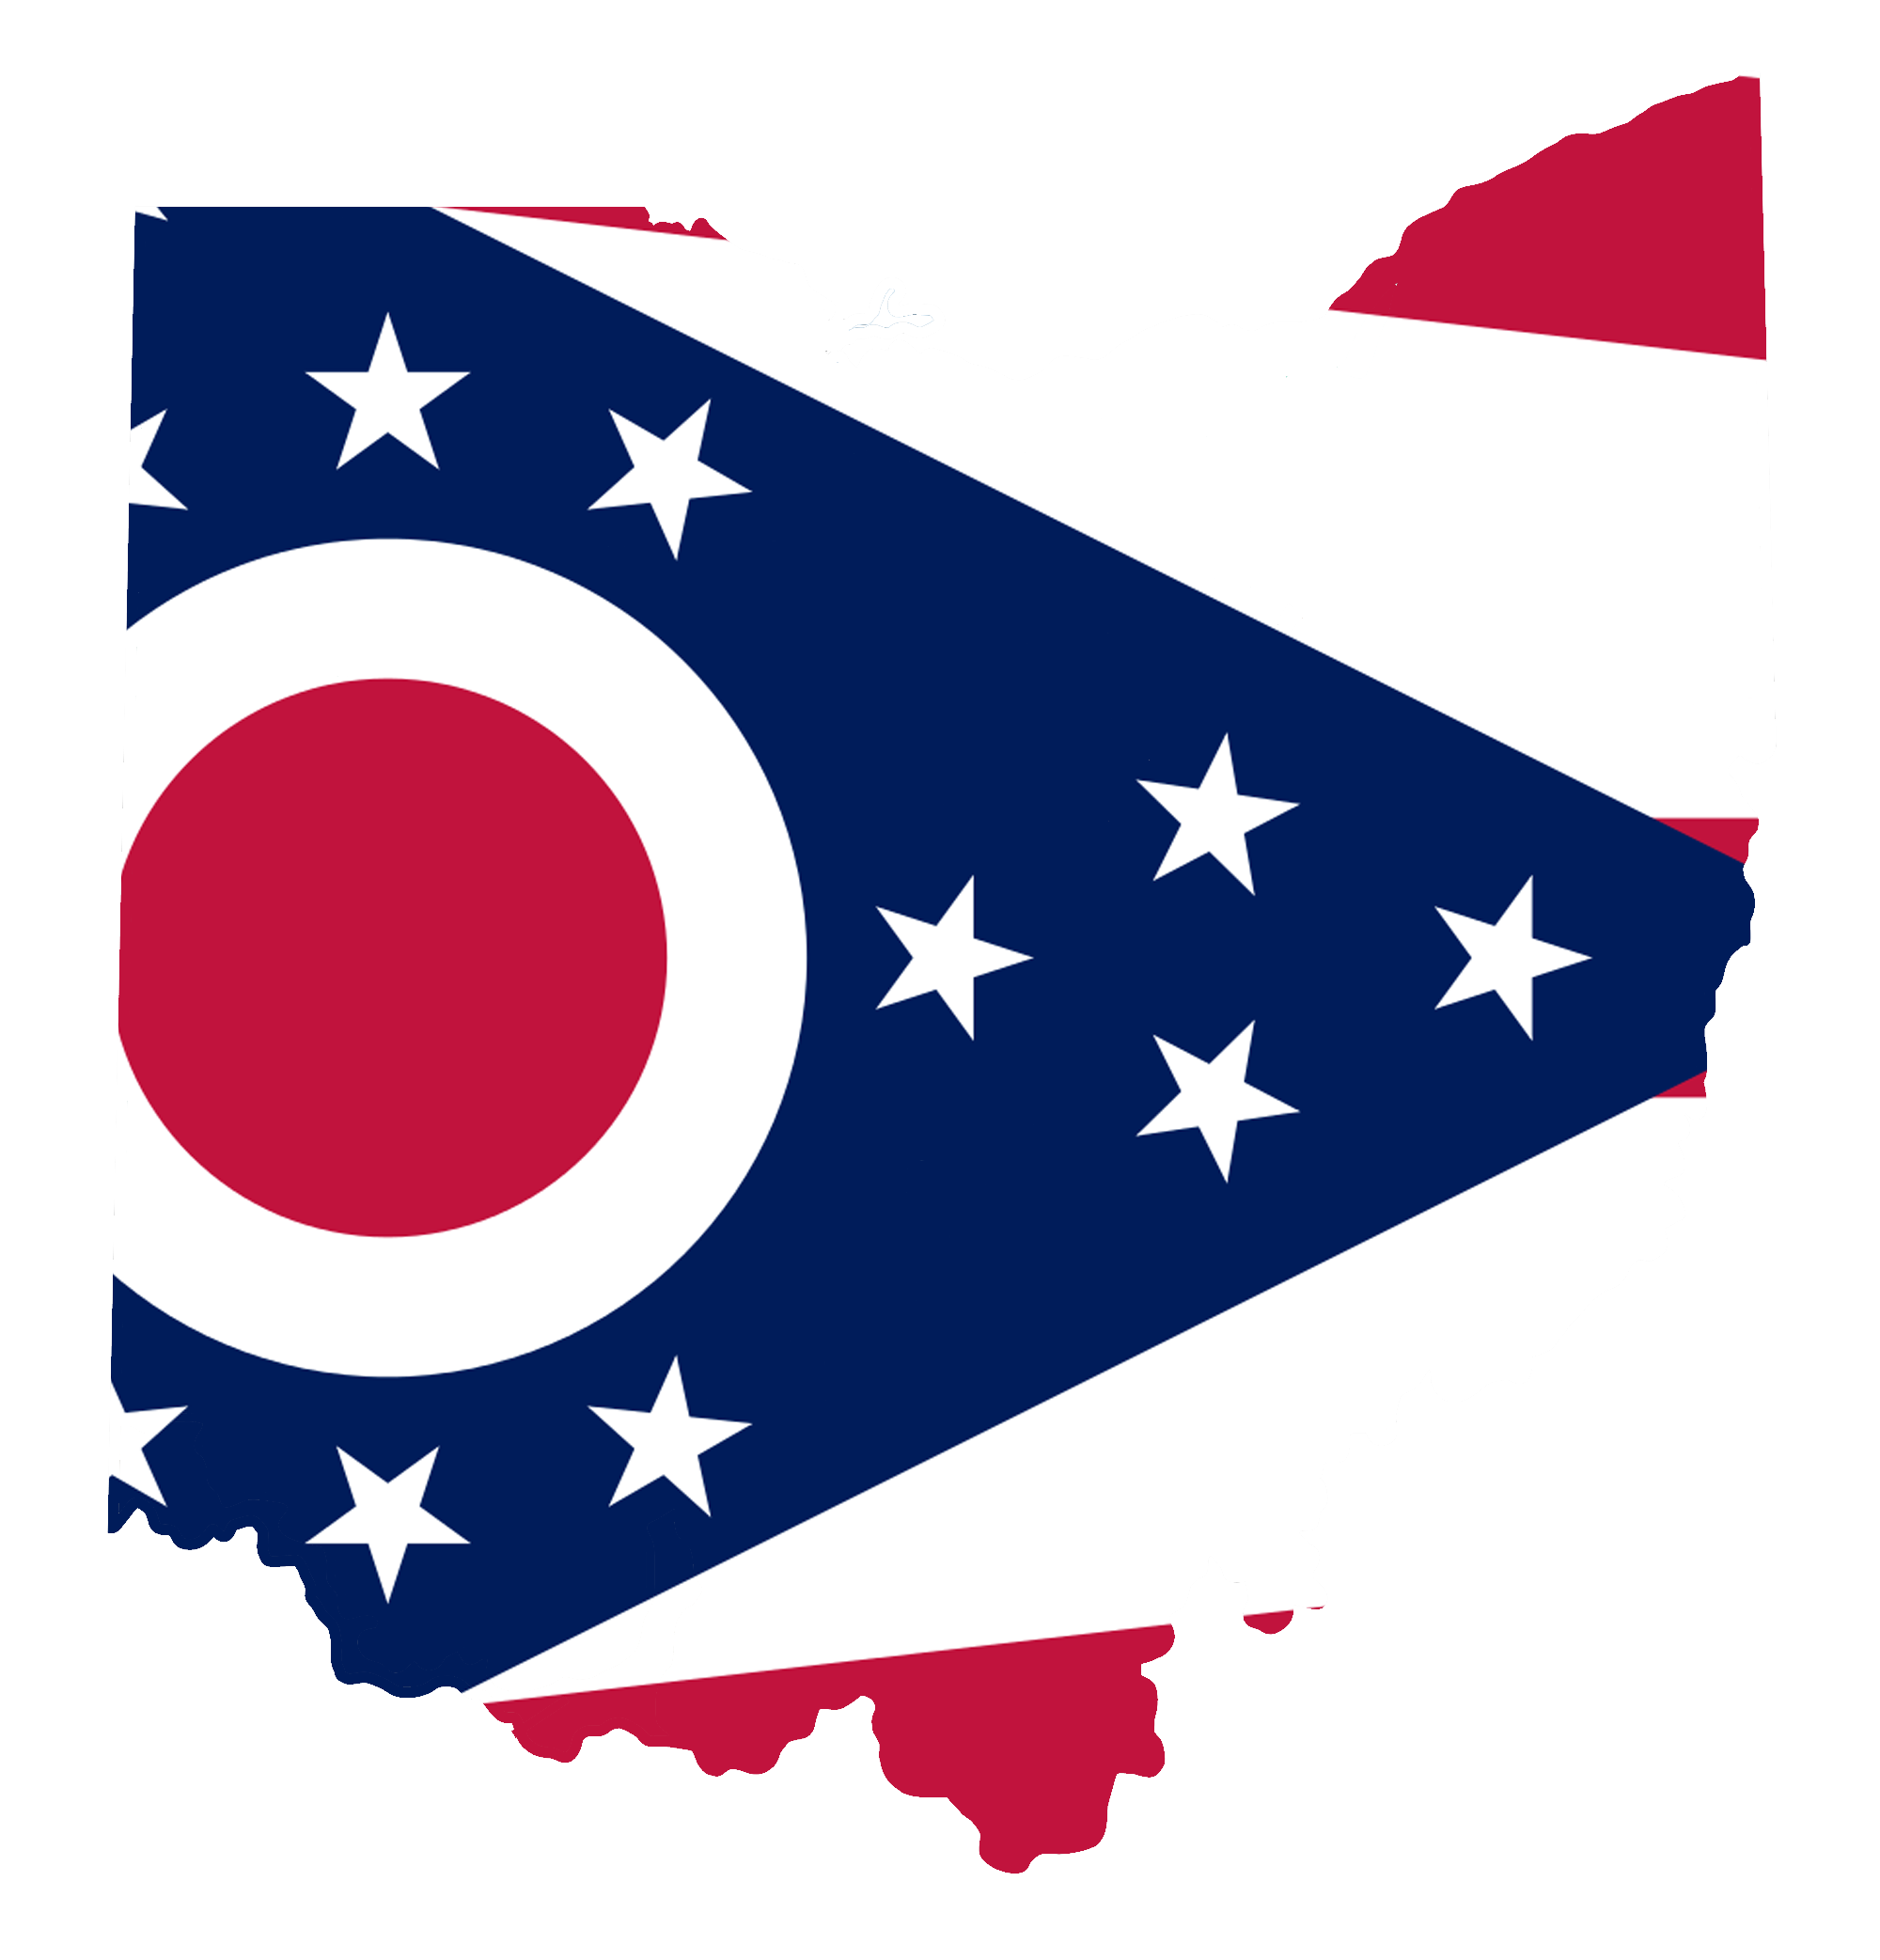 Ohio Flag Png Transparent Ohio Flag Png Images Pluspng